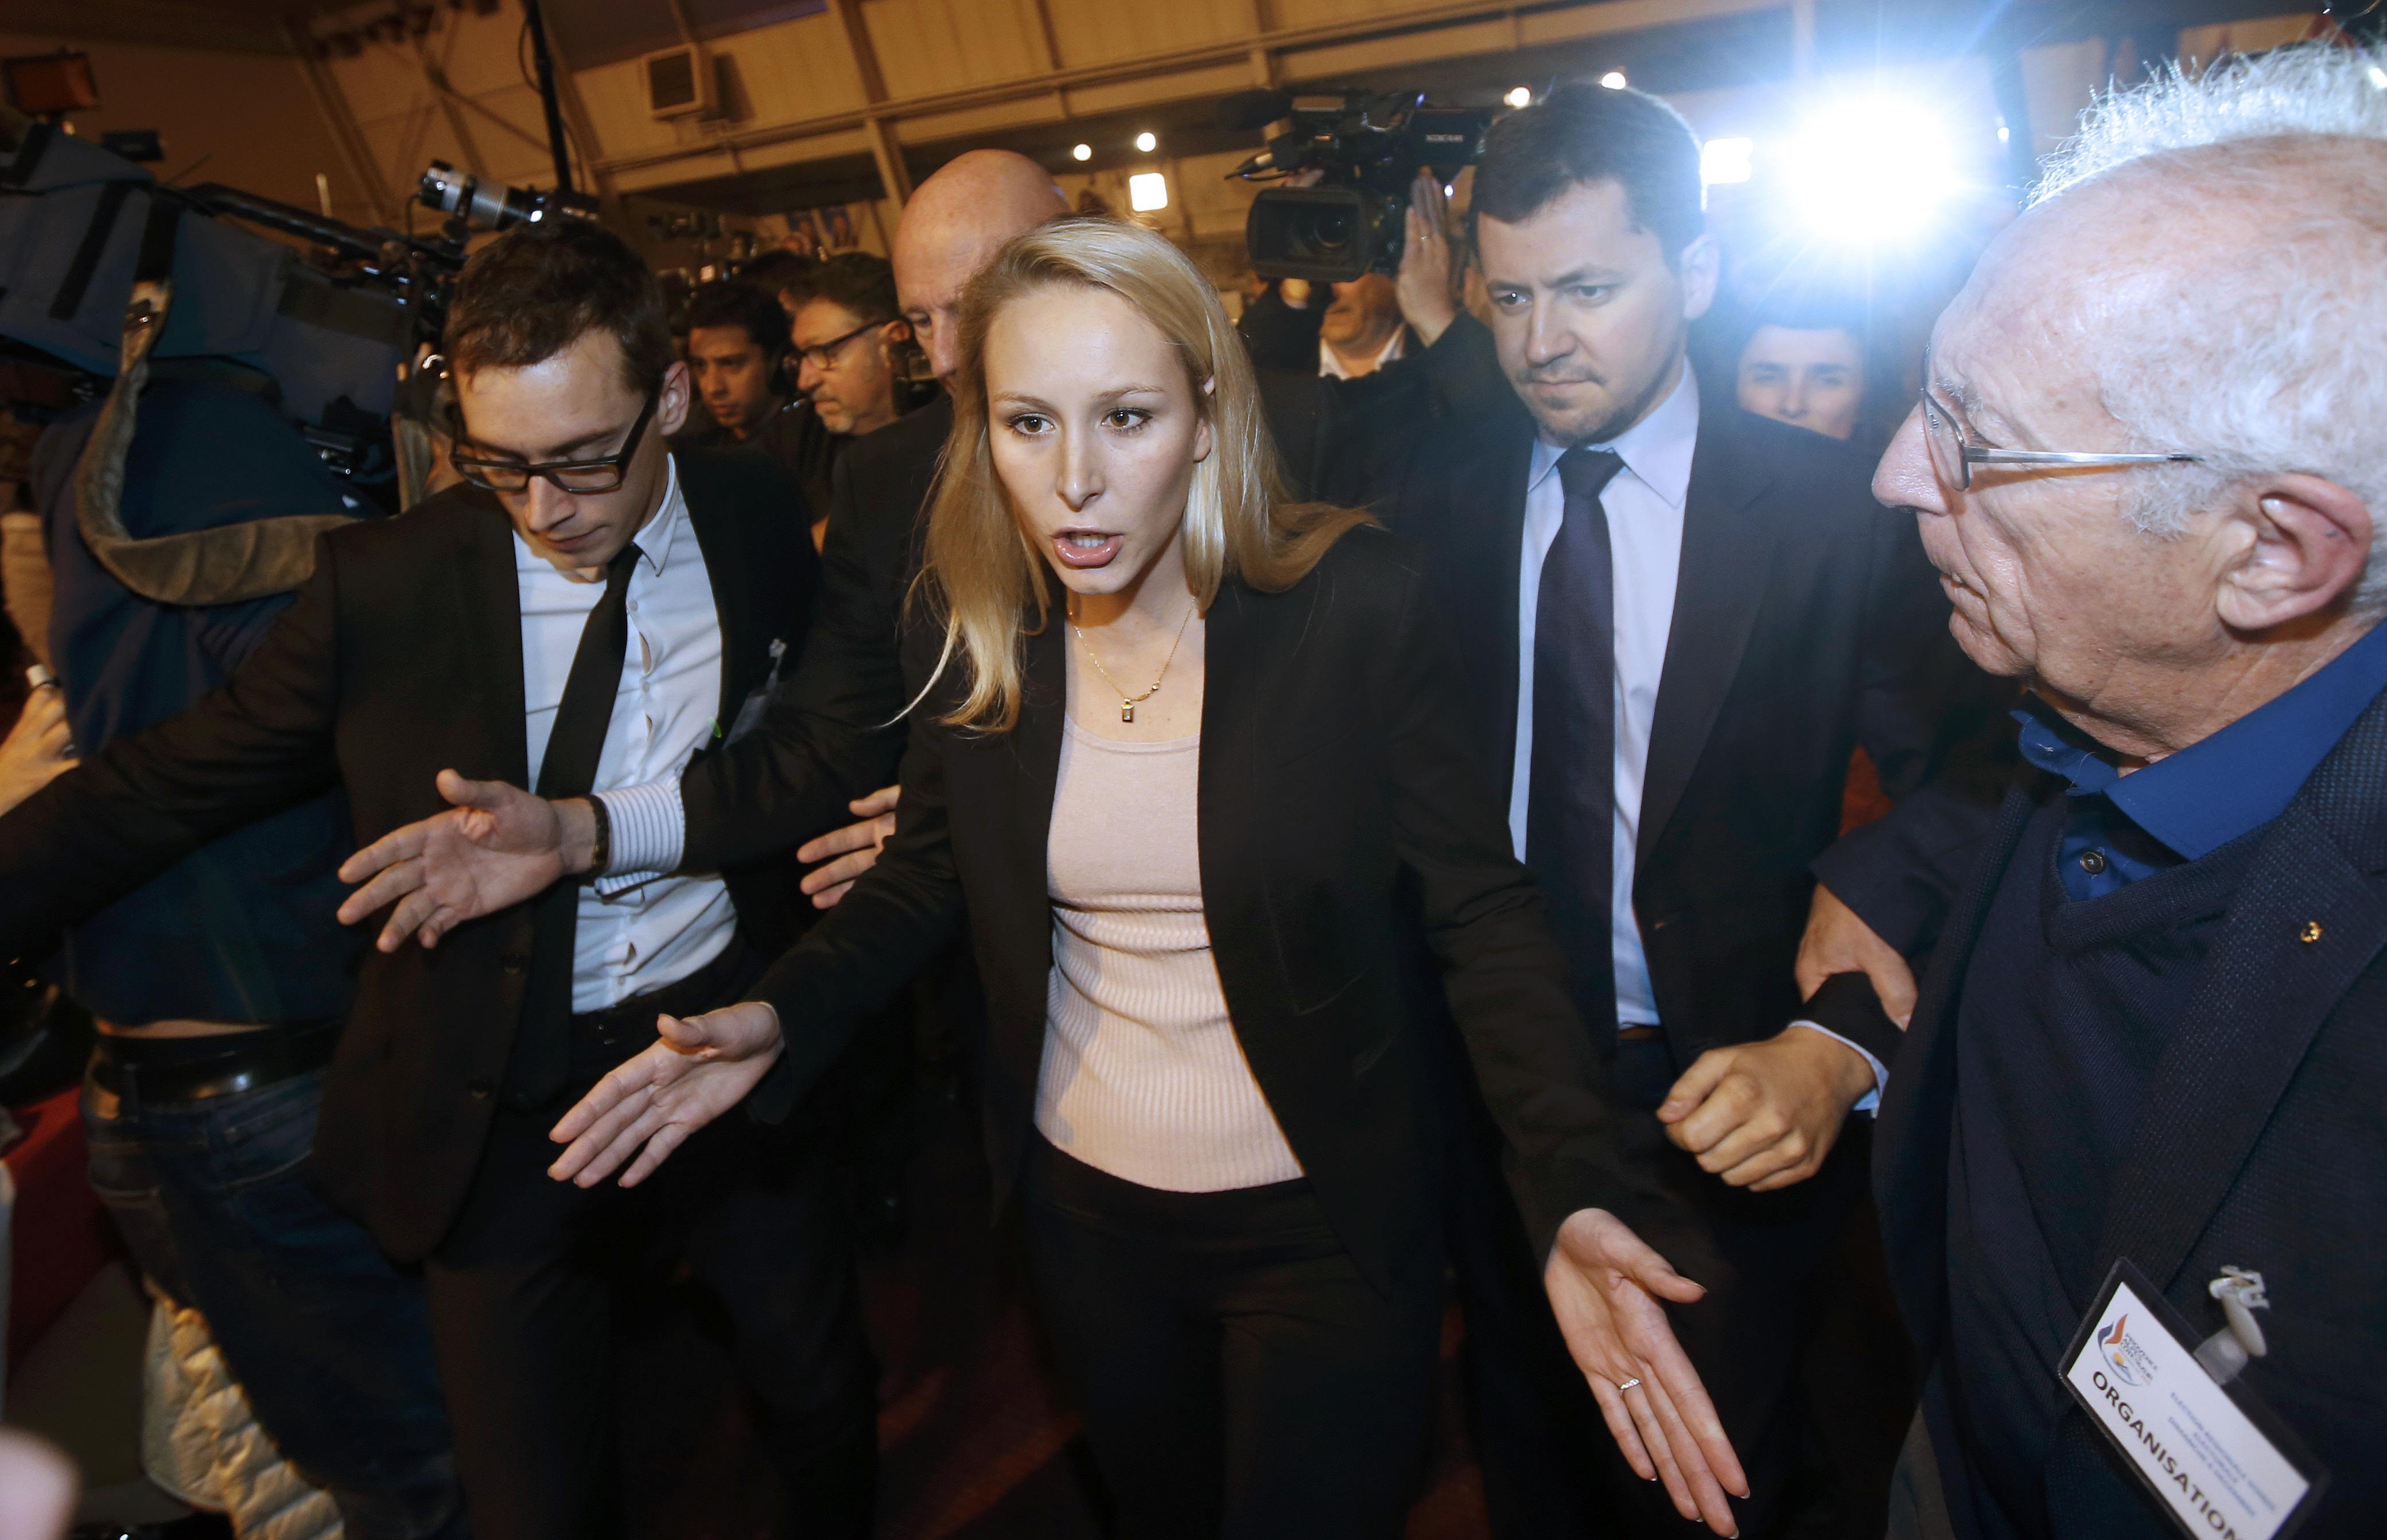 Marion Marechal-Le Pen, French National Front political party member and candidate for National Front in the Provence-Alpes-Cote d'Azur (PACA) region reacts after the announcement of the results of the first round of the regional elections in Le Pontet